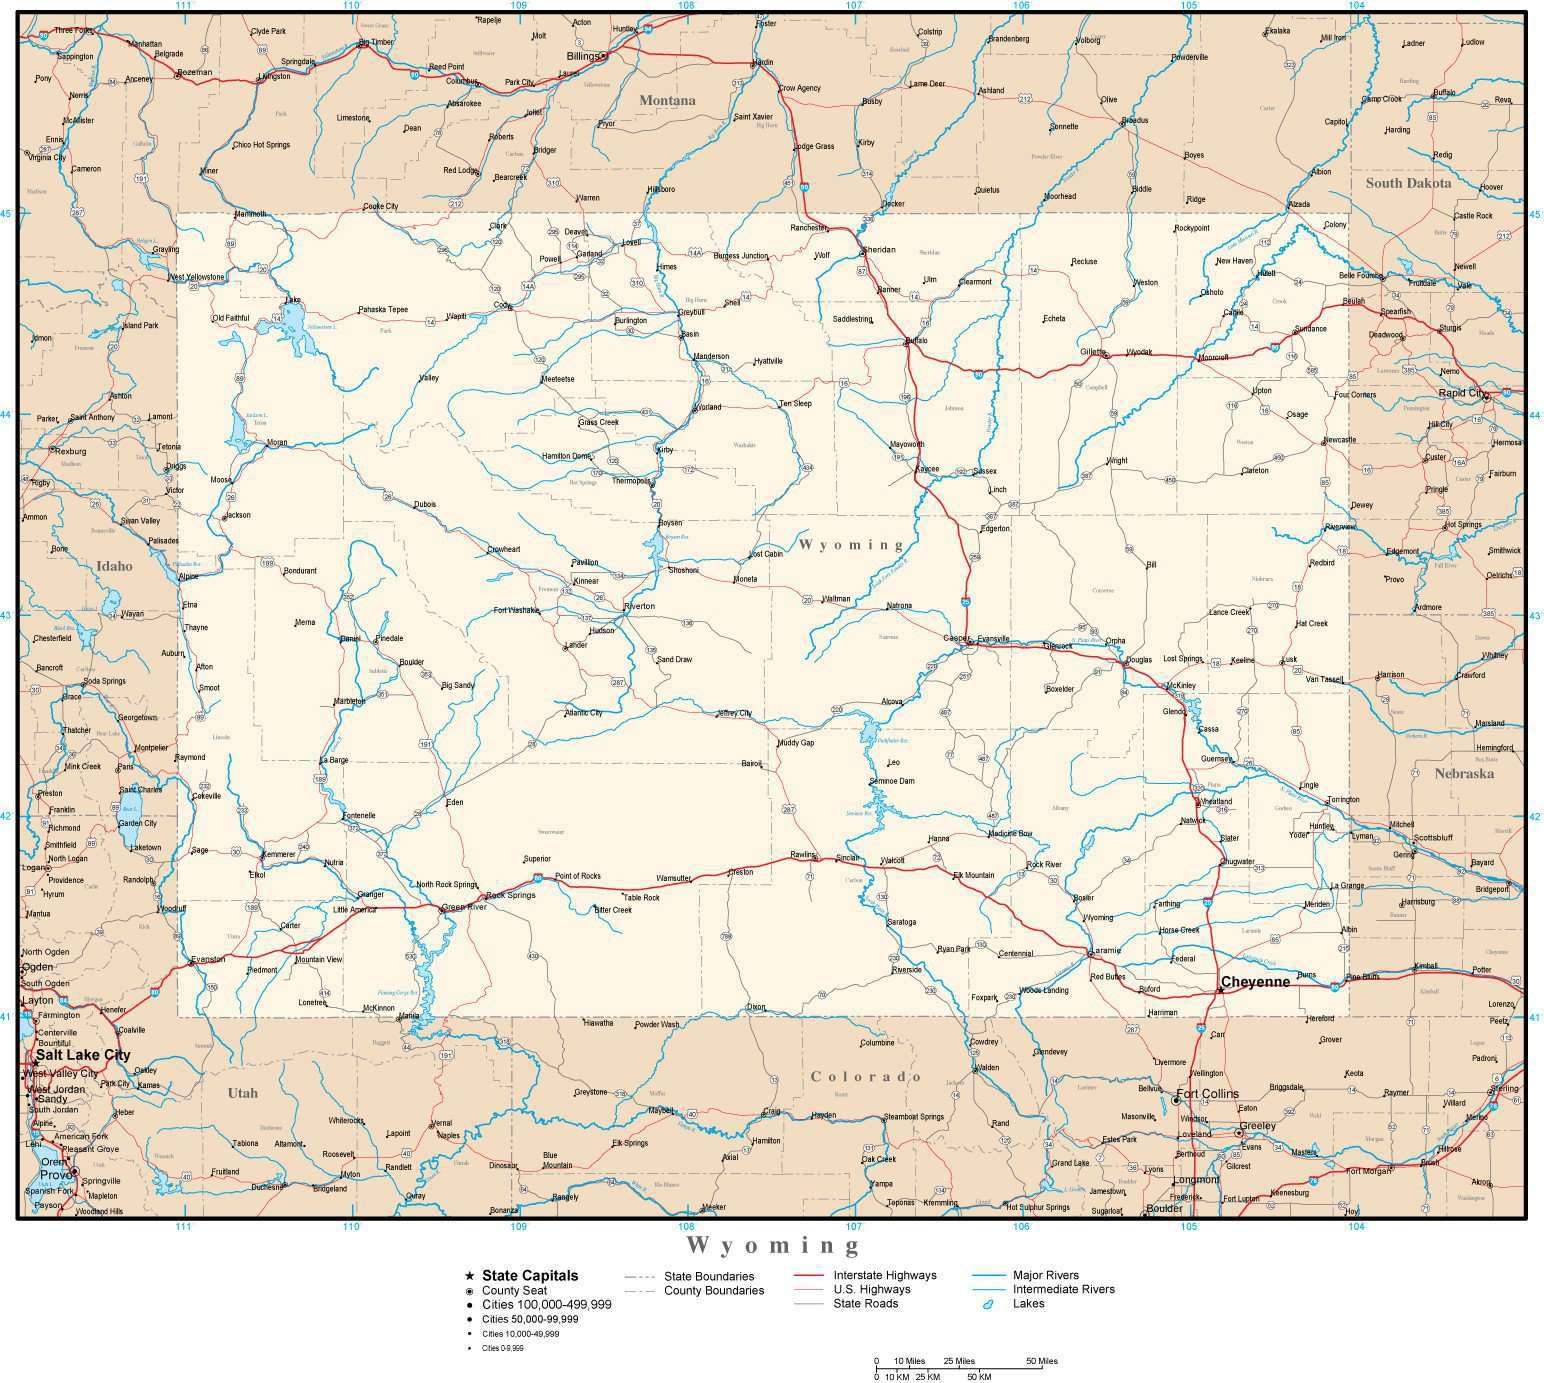 Wyoming Map In Adobe Illustrator Vector Format Map Resources